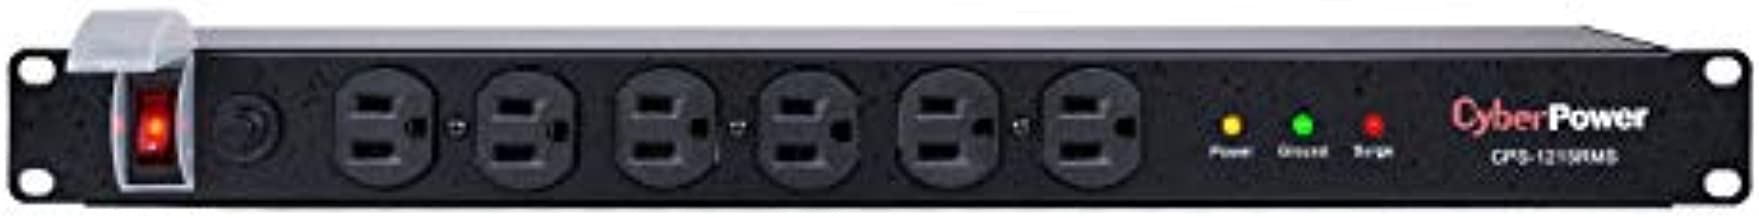 CyberPower CPS1215RMS Surge Protector, 120V/15A, 12 Outlets, 15ft Power Cord, 1U Rackmount Black